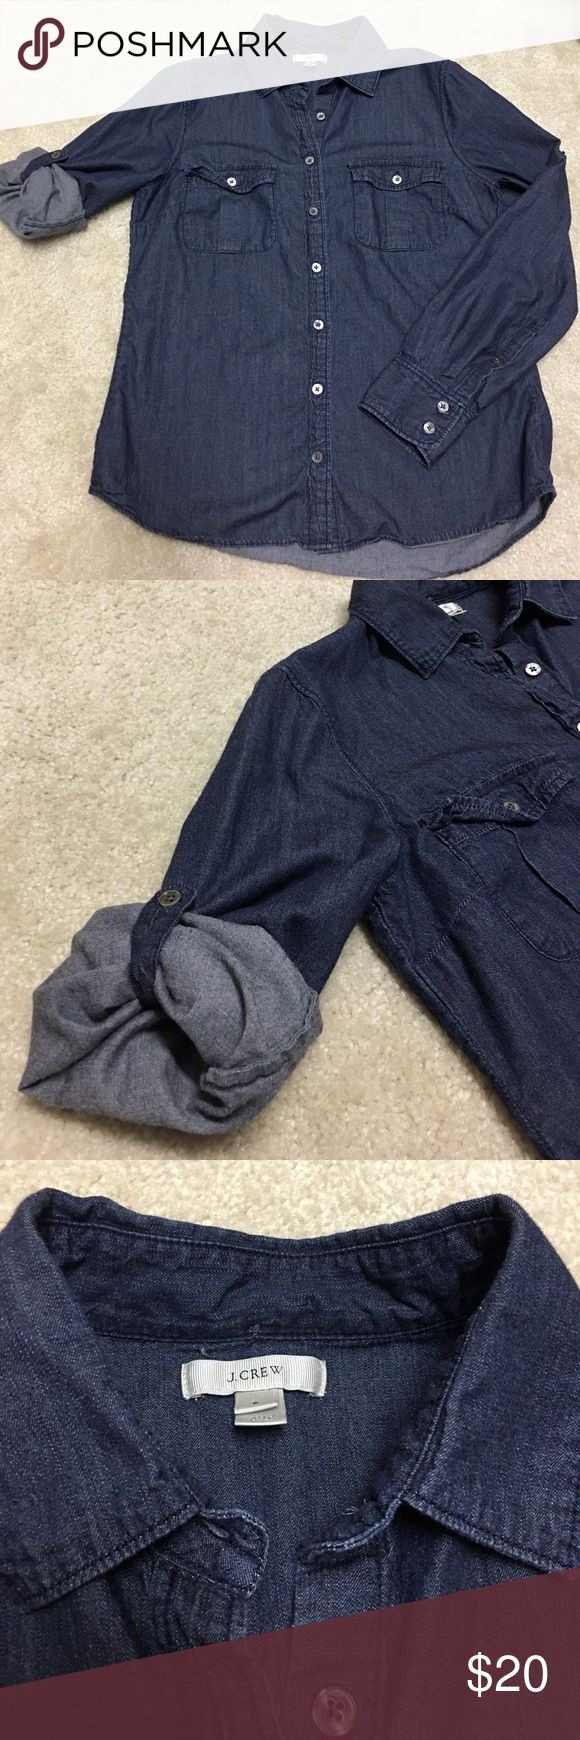 J.crew dark chambray shirt Dark chambray shirt from jcrew. Sleeves have option of being folded and buttoned. Great spring/summer staple! J. Crew Tops Button Down Shirts